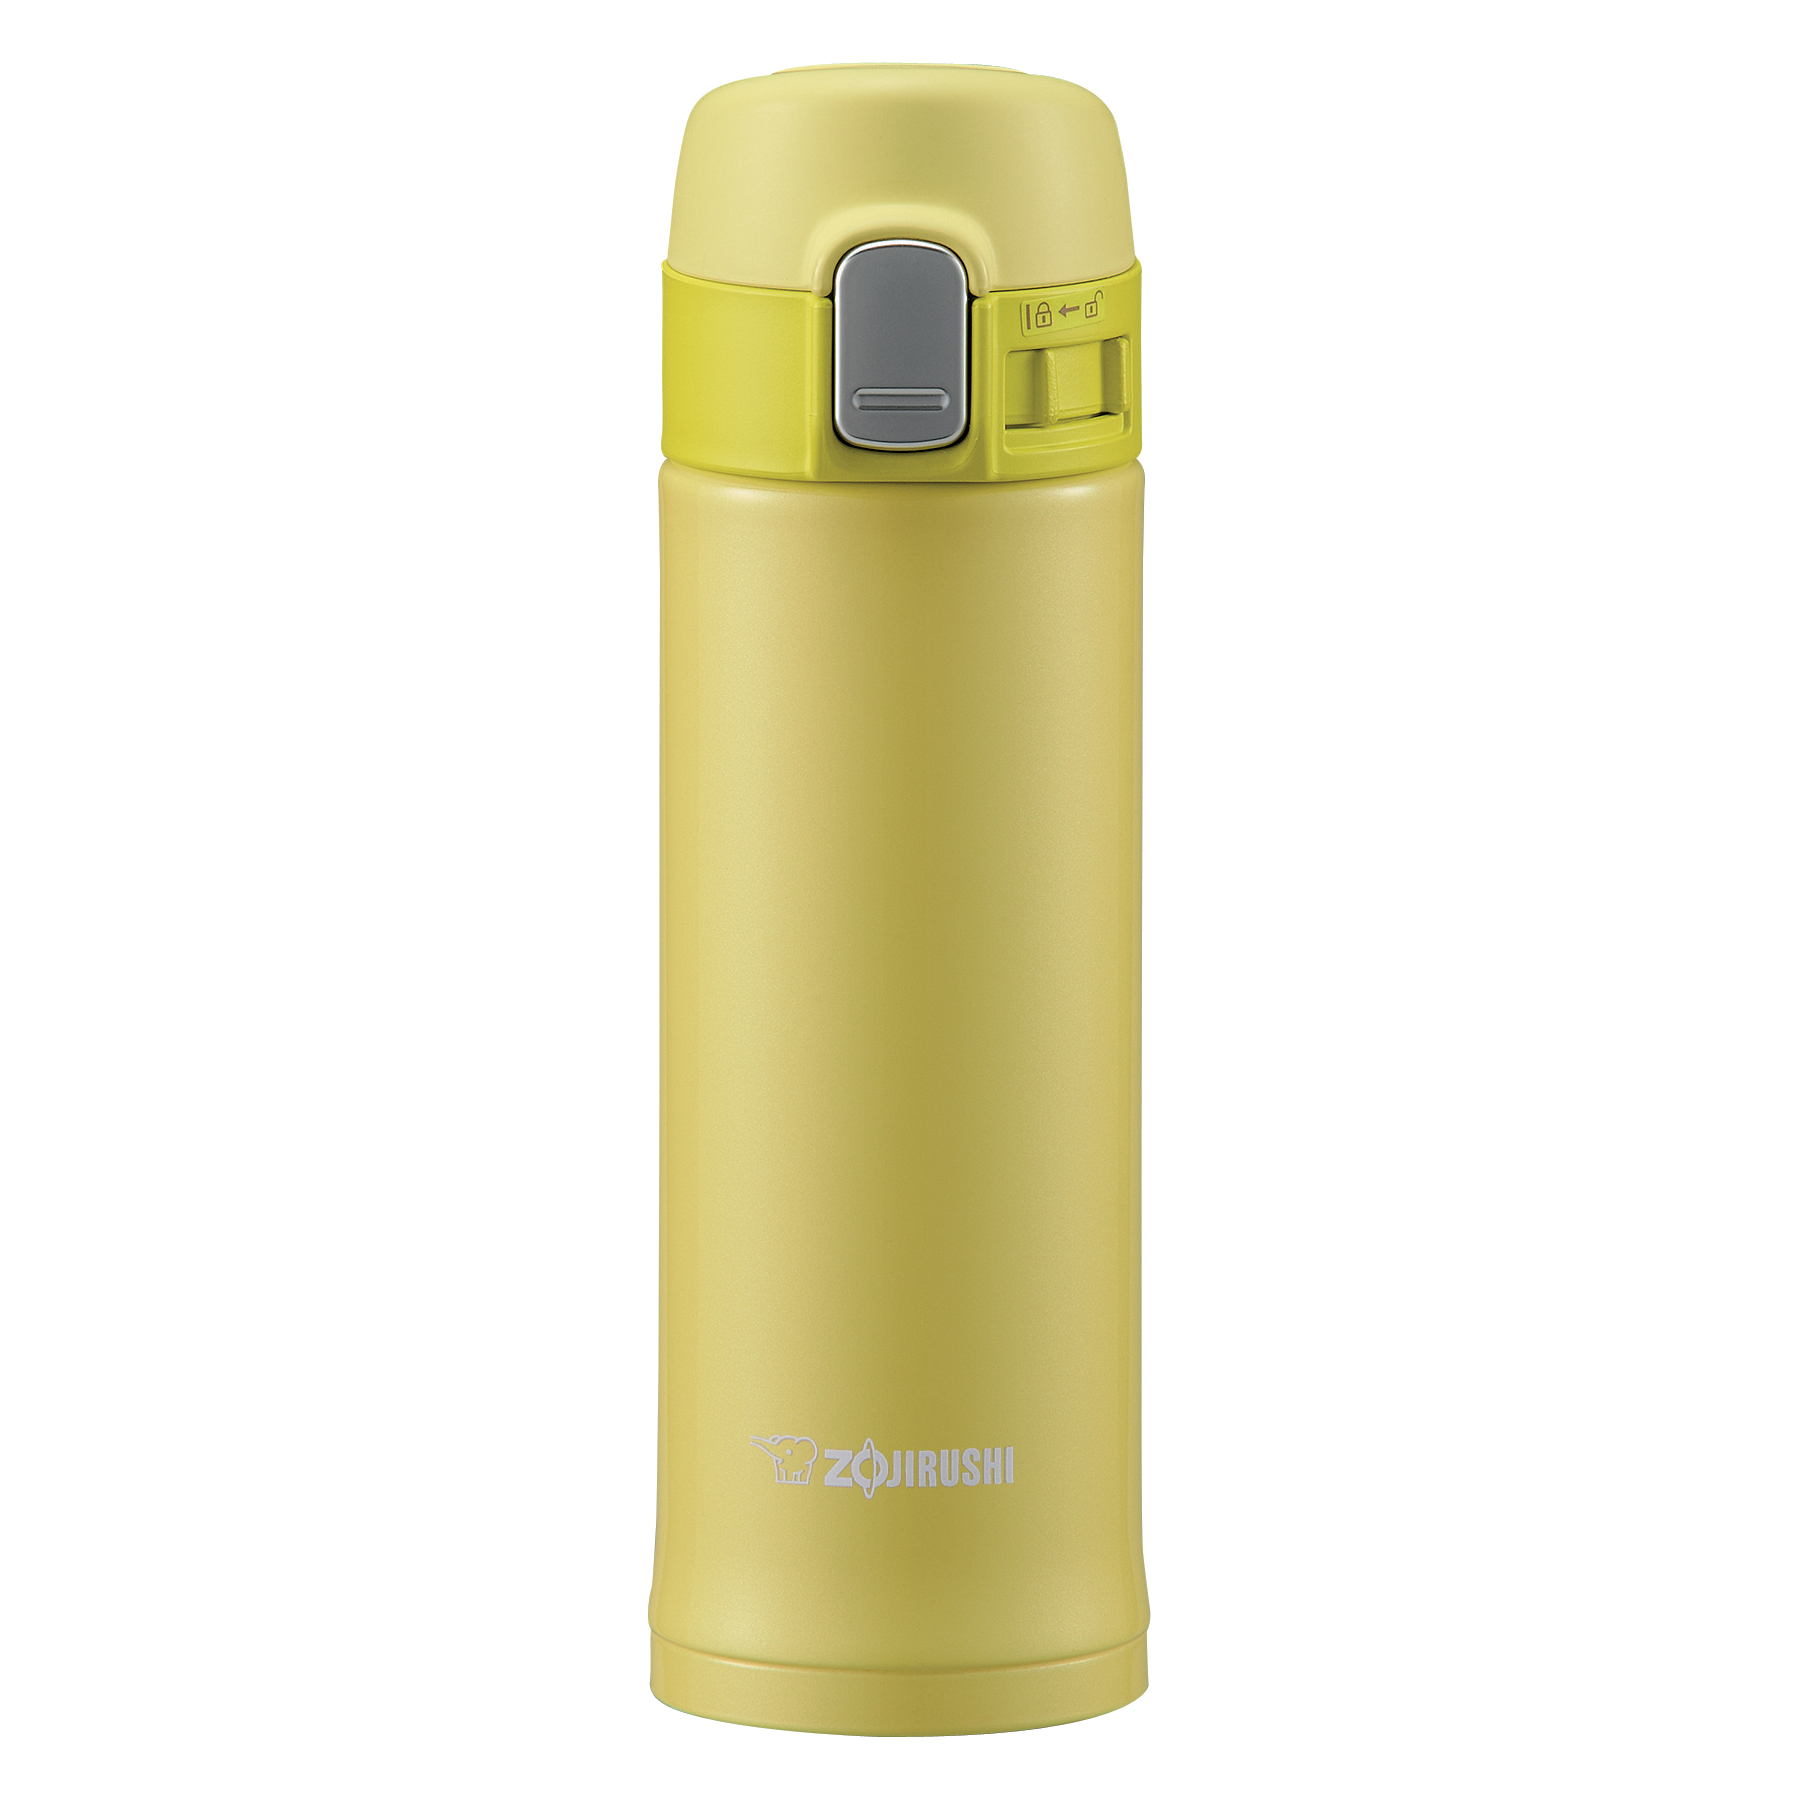 Zojirushi Lime Yellow Stainless Steel Vacuum Insulated 10 Ounce Mug